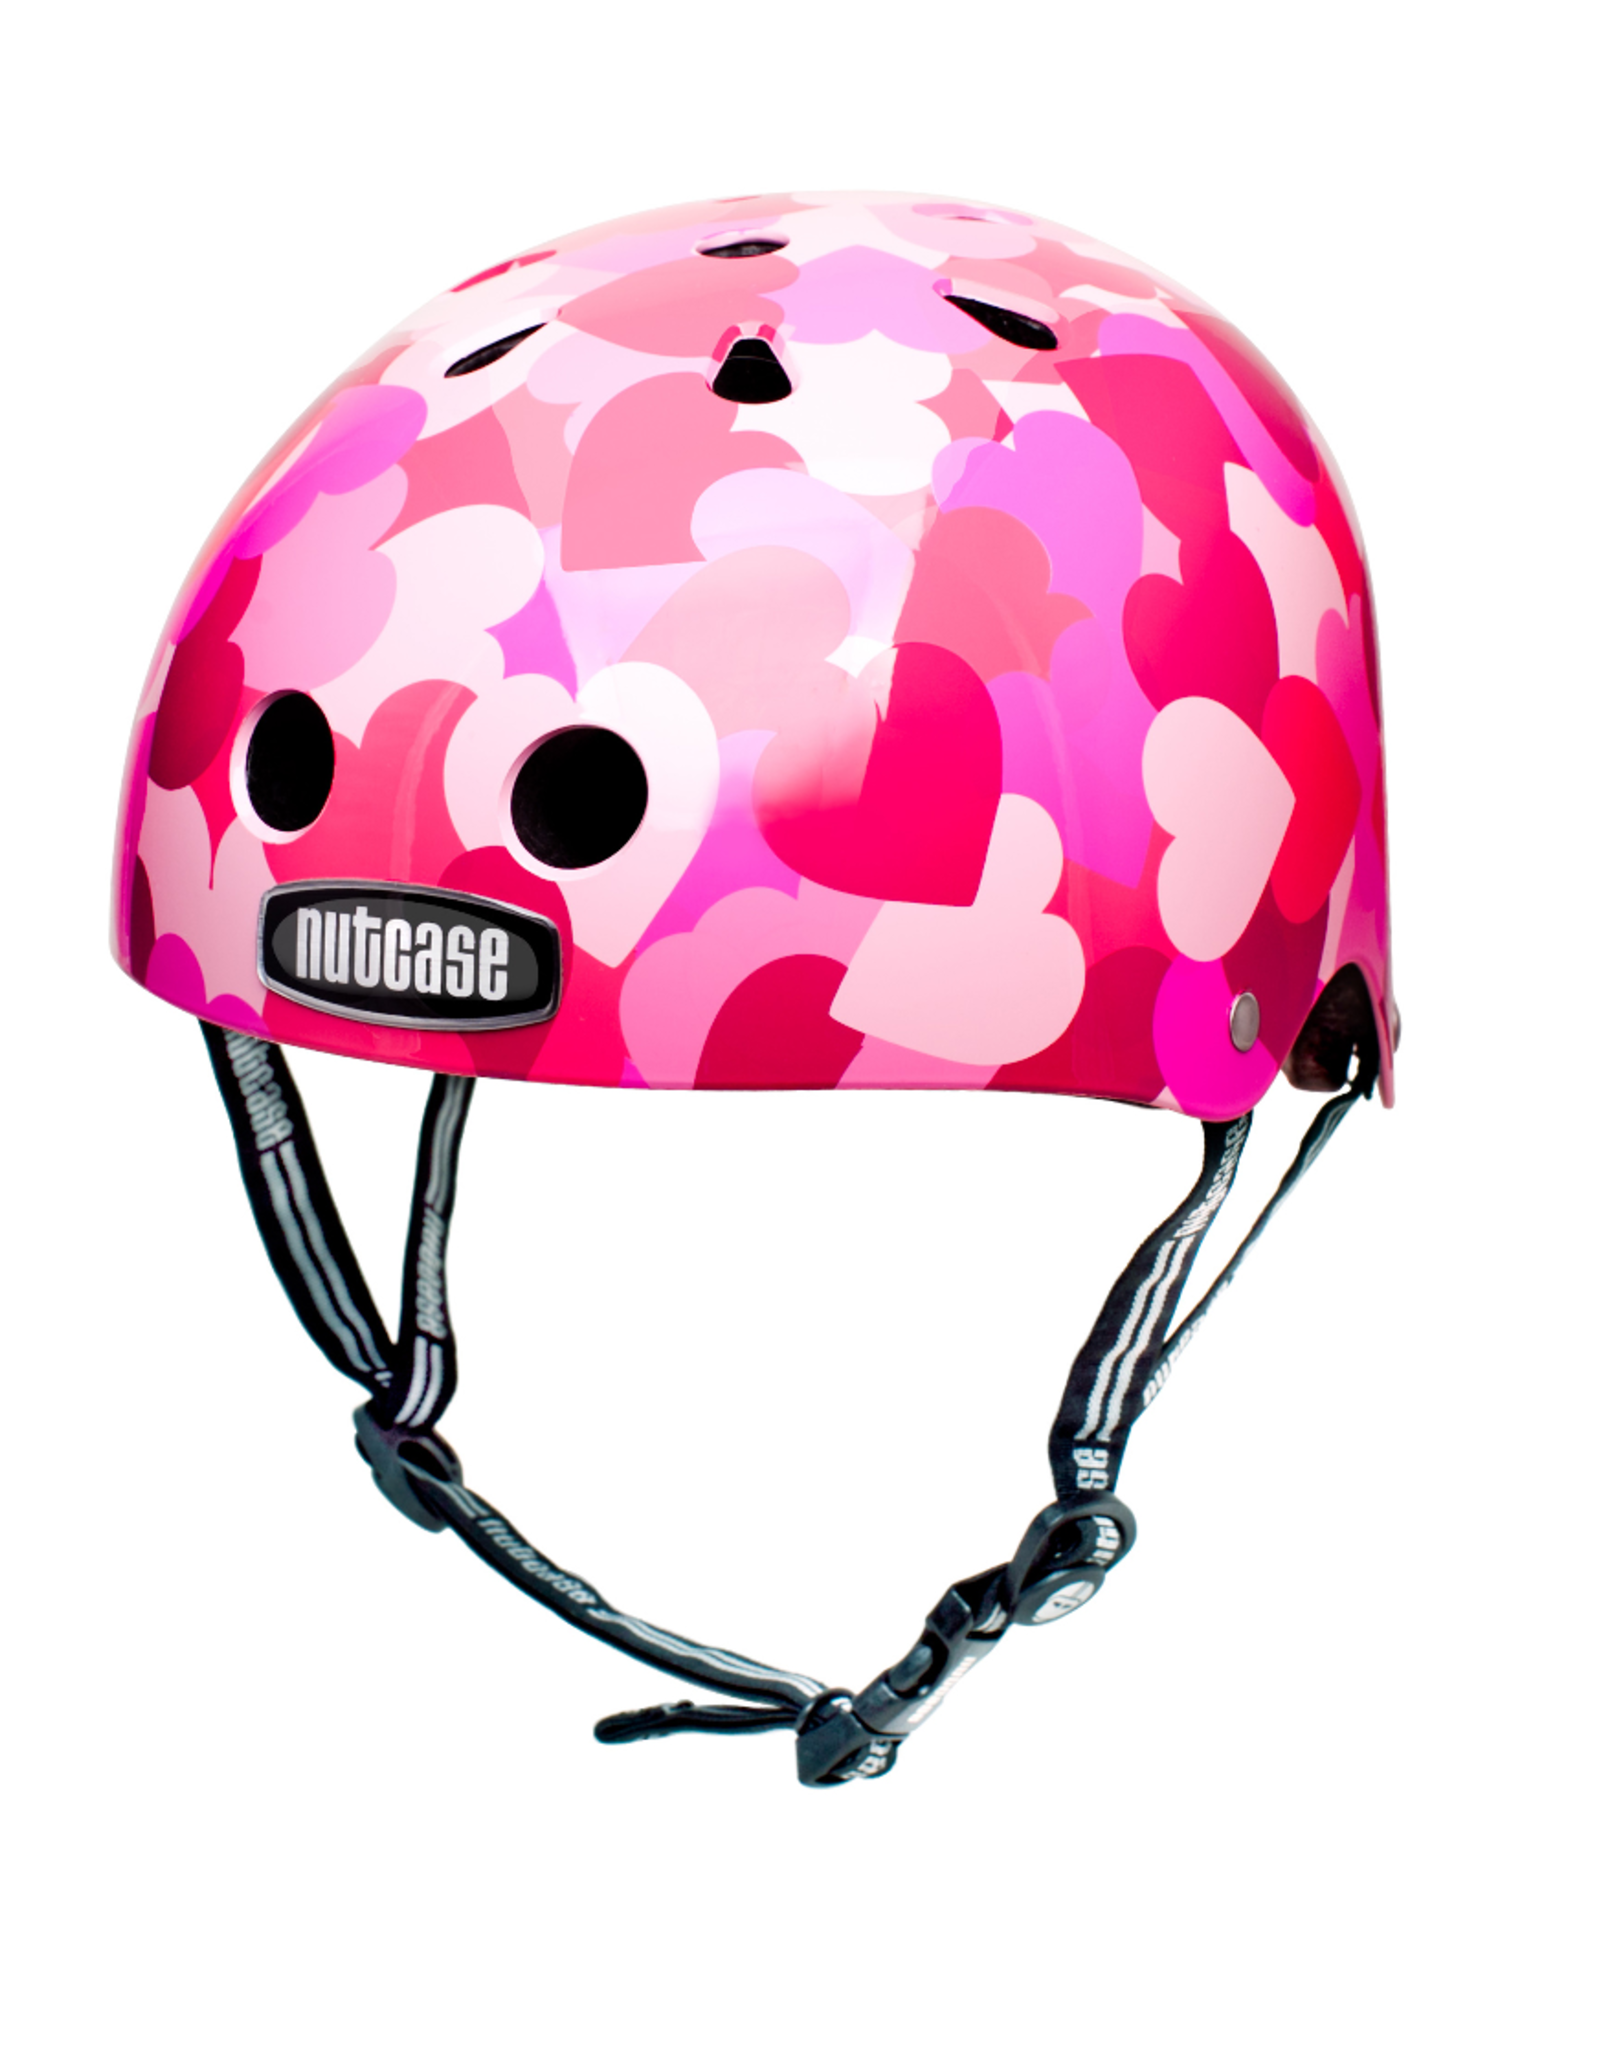 Nutcase Helmet - Nutcase One Off Helmets